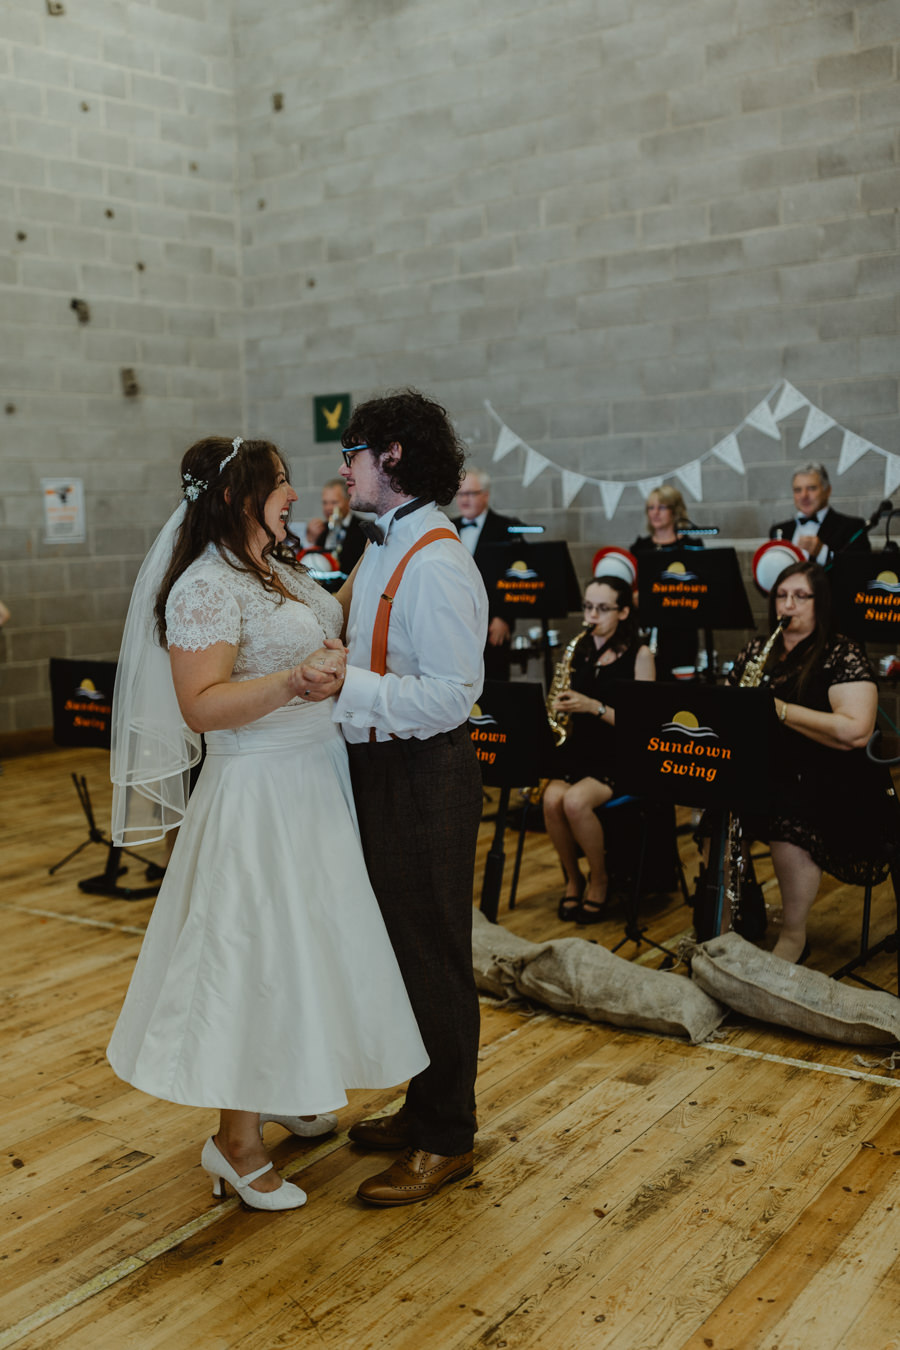 DIY vintage wedding in Huddersfield 2018, with Stevie Jay Photography (18)